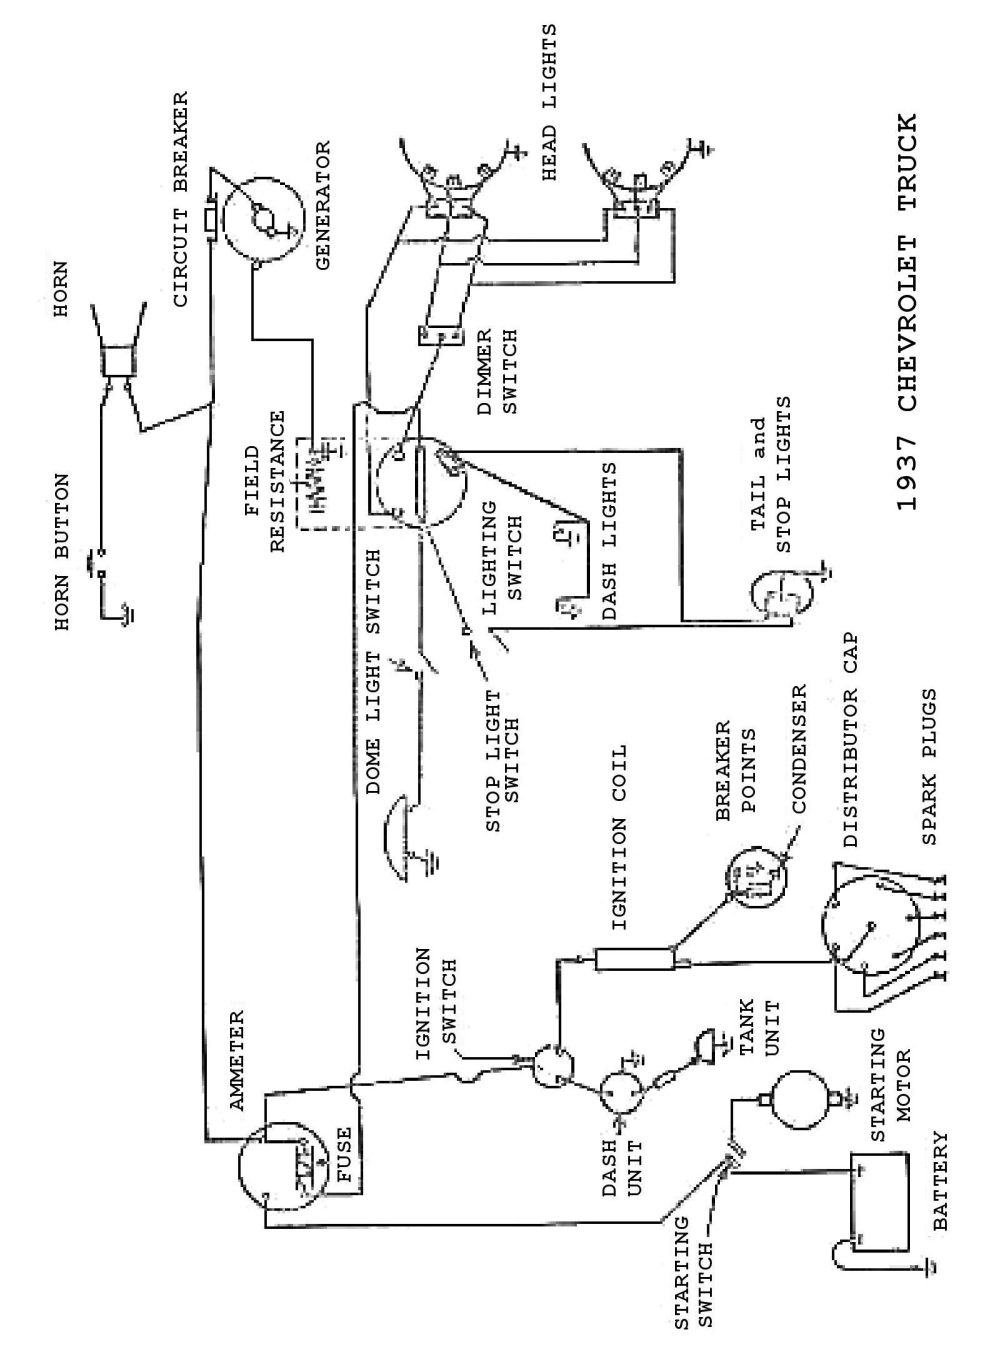 medium resolution of 1950 chevy generator wiring diagram wiring diagram fascinating wiring diagram for 1954 ford truck also with 1950 chevy truck wiring